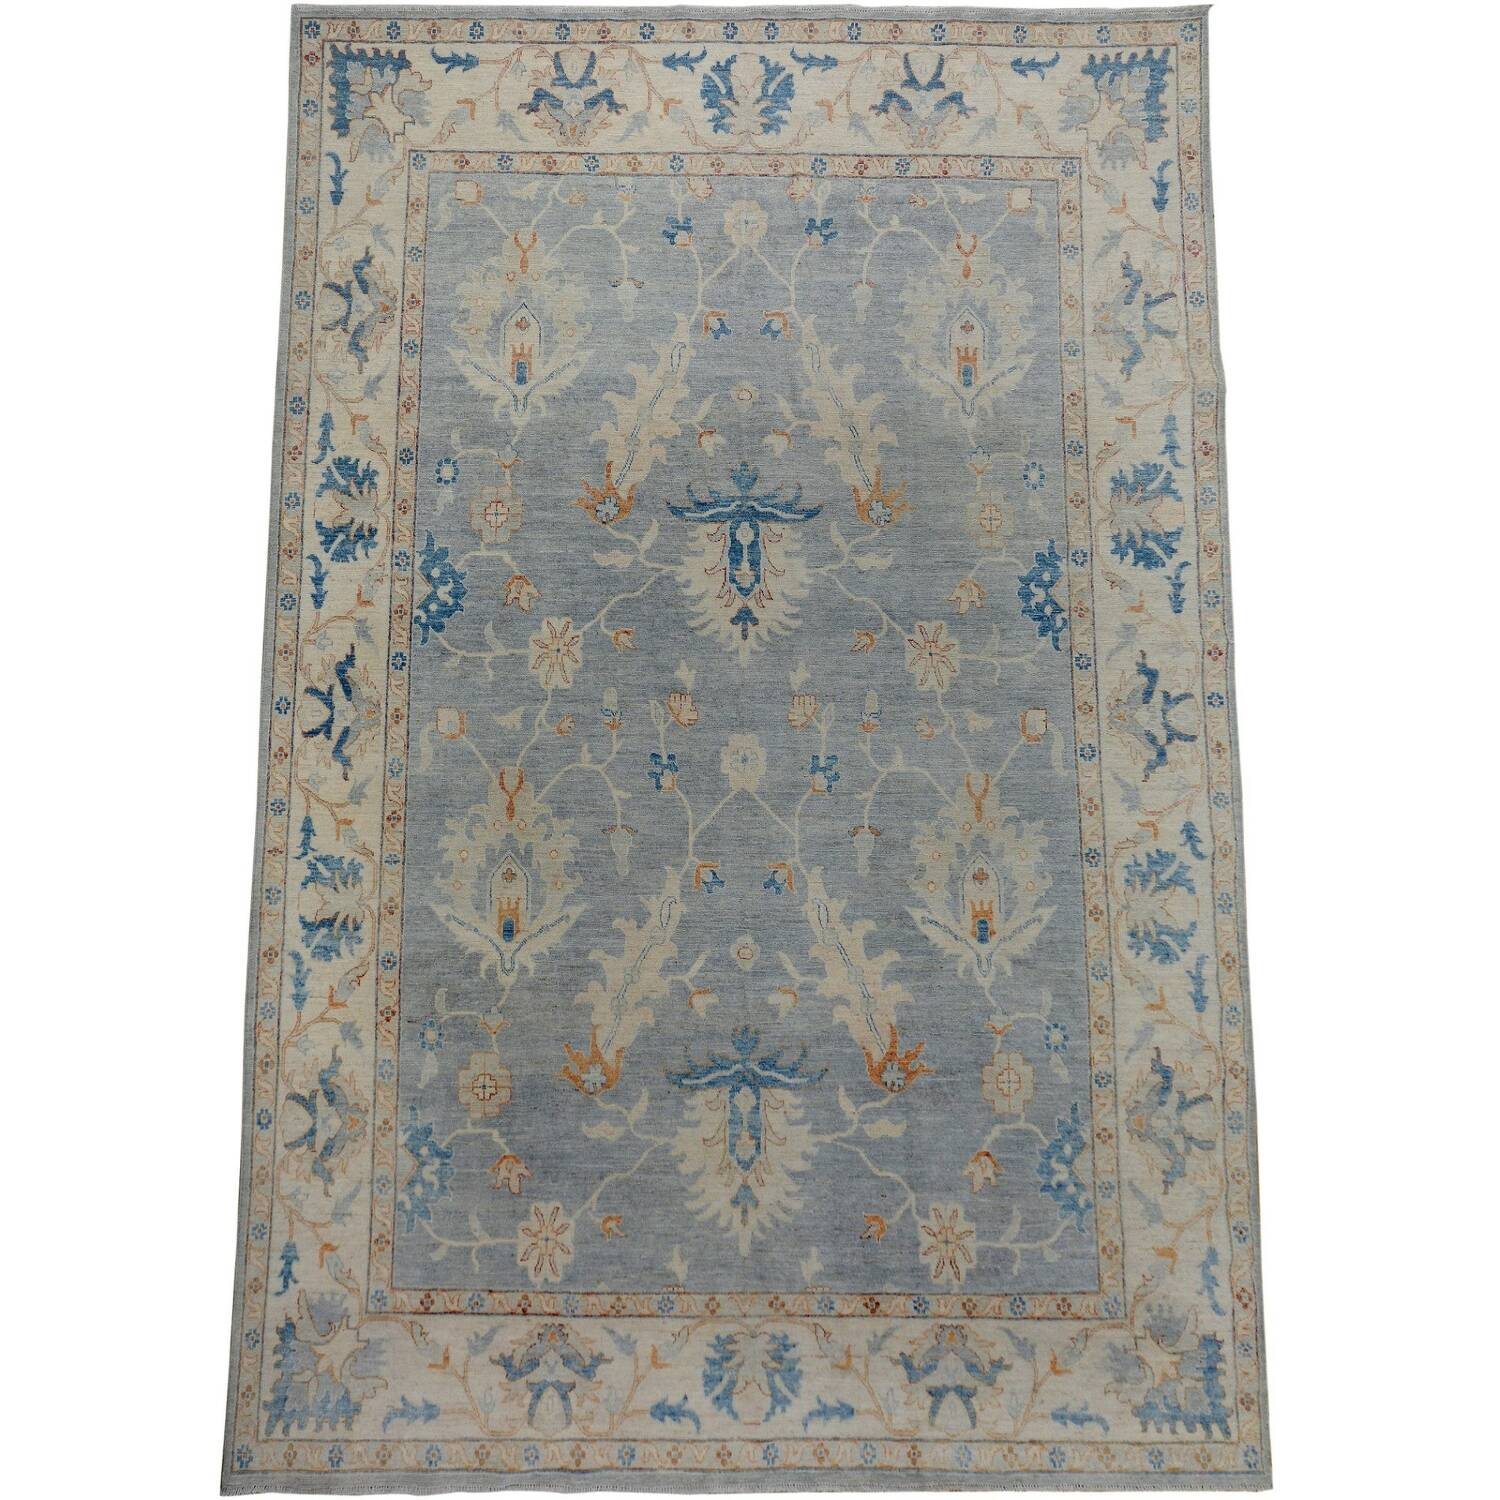 All-Over Floral Oushak Turkish Oriental Area Rug 9x12 image 2